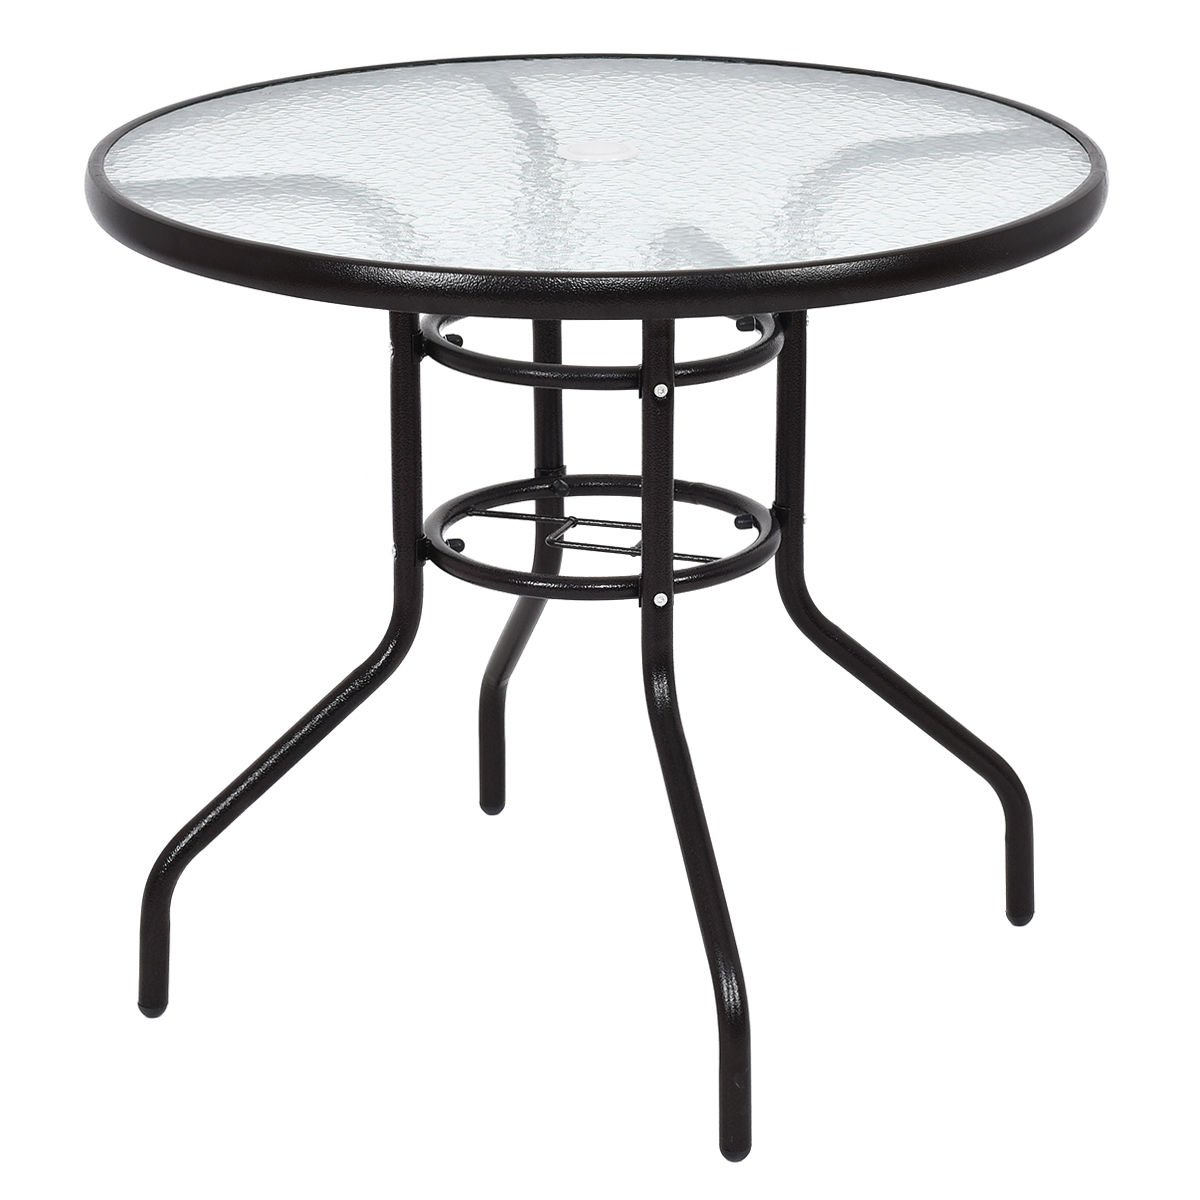 TANGKULA Patio Table 31.5'' Tempered Glass Top Metal Frame Outdoor Garden Poolside Balcony Dining Bistro Table (Round)